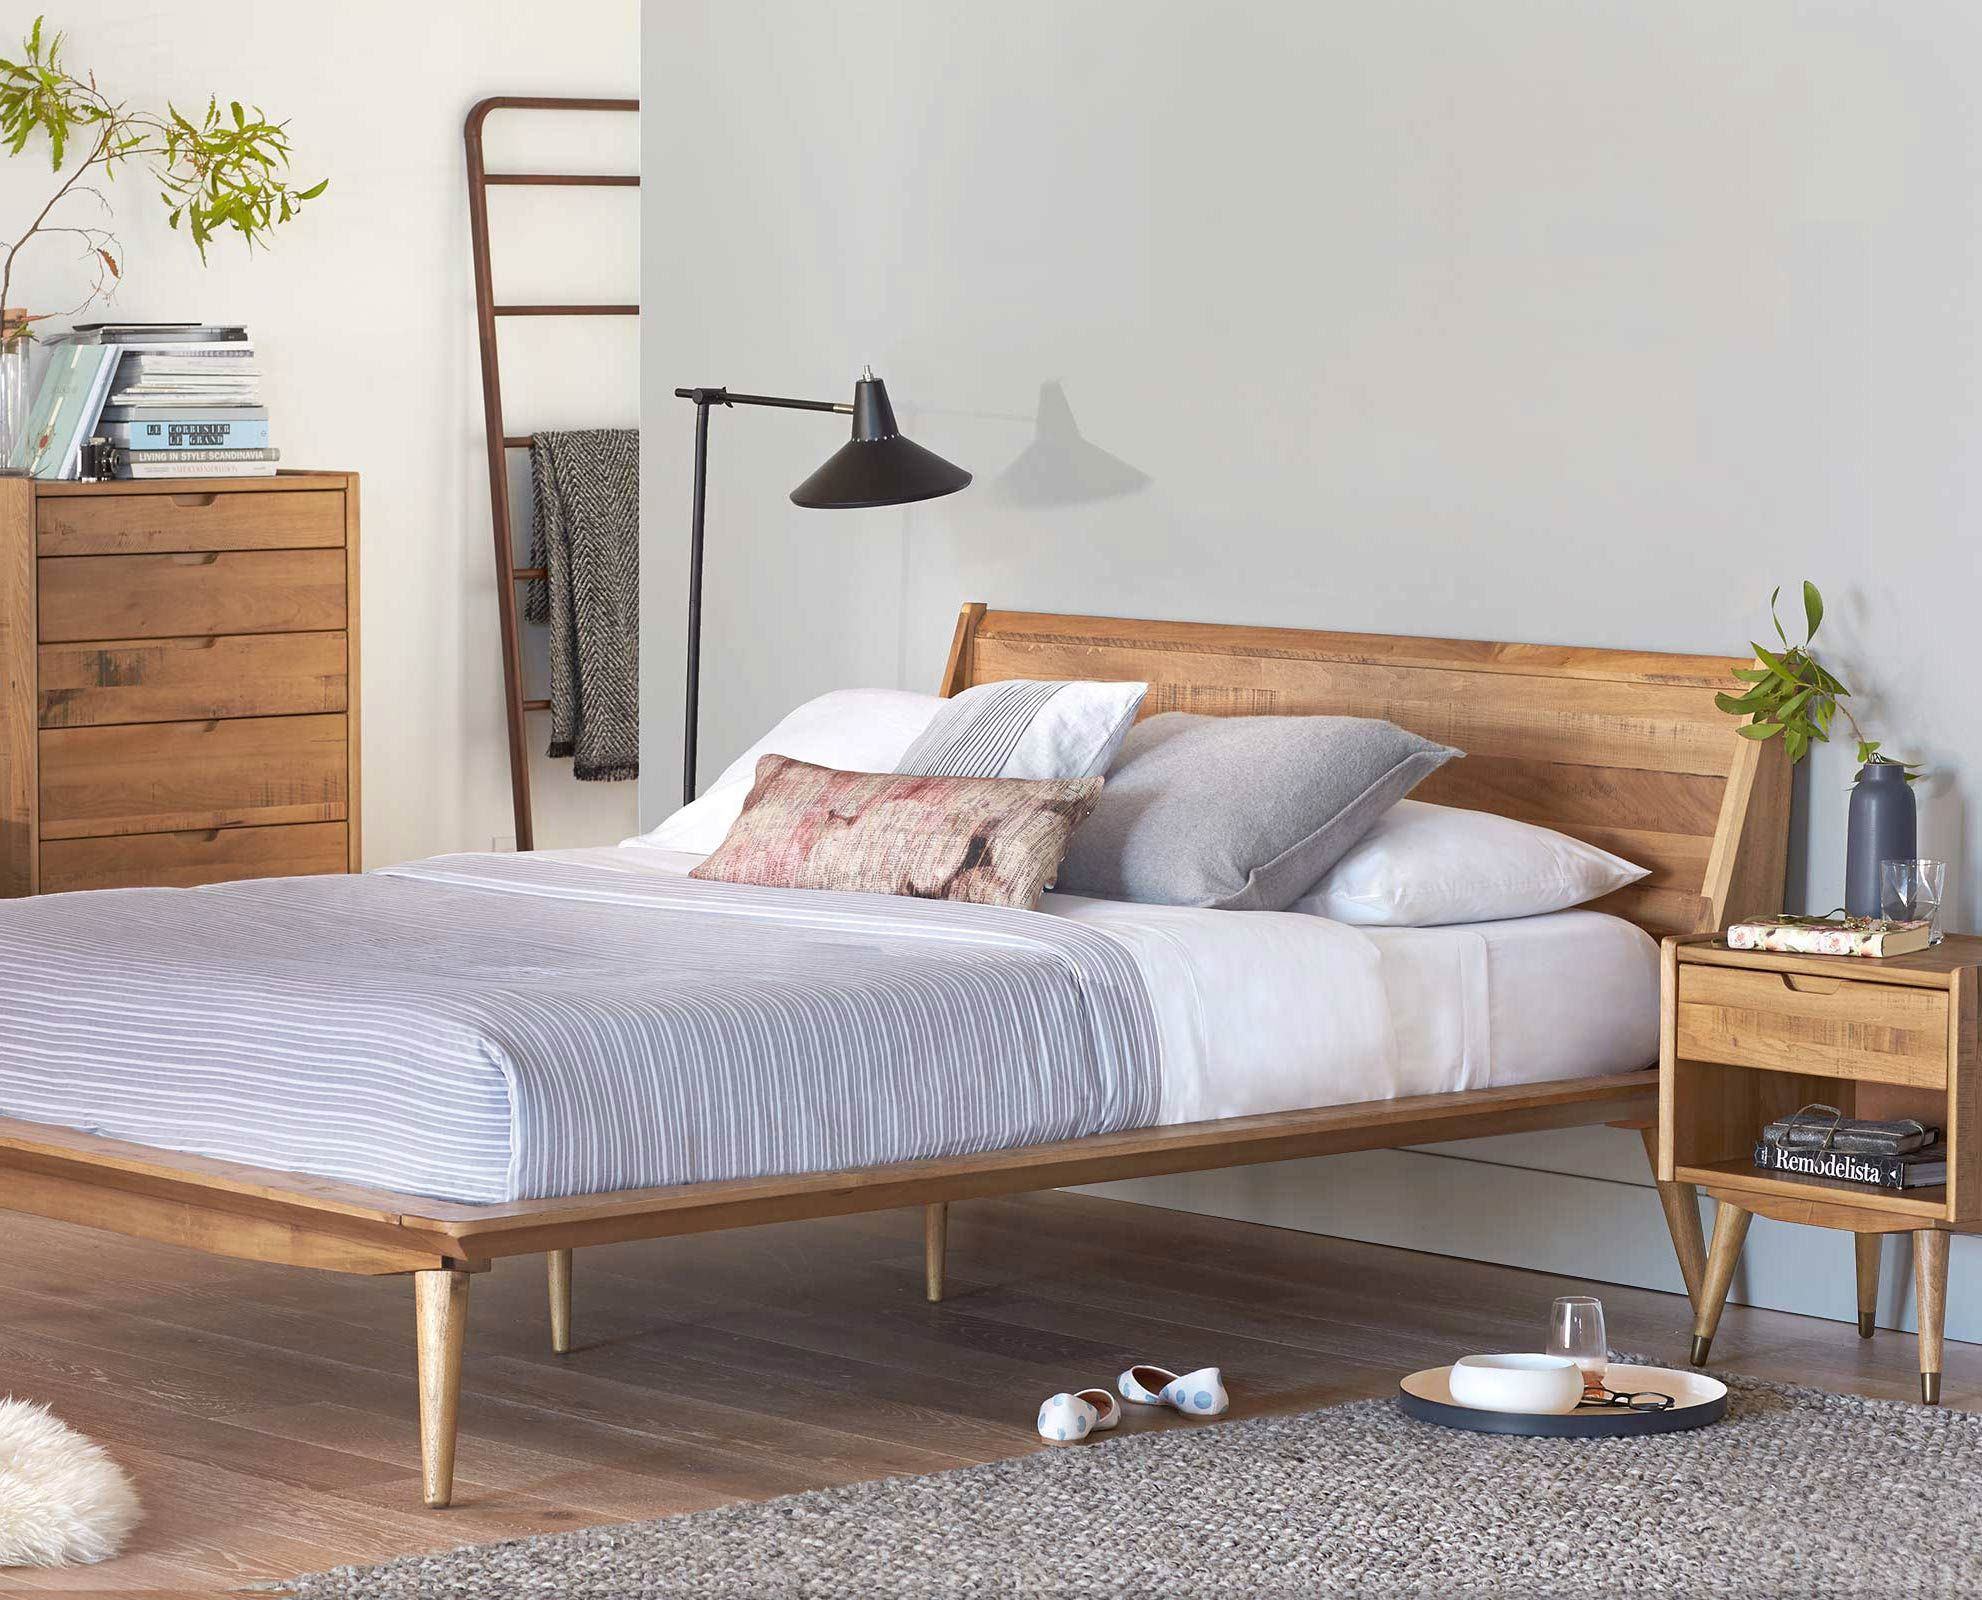 Scandinavian Bedroom Furniture. Scandinavian Designs  The Nordic inspired Bolig bed is crafted from solid poplar and features